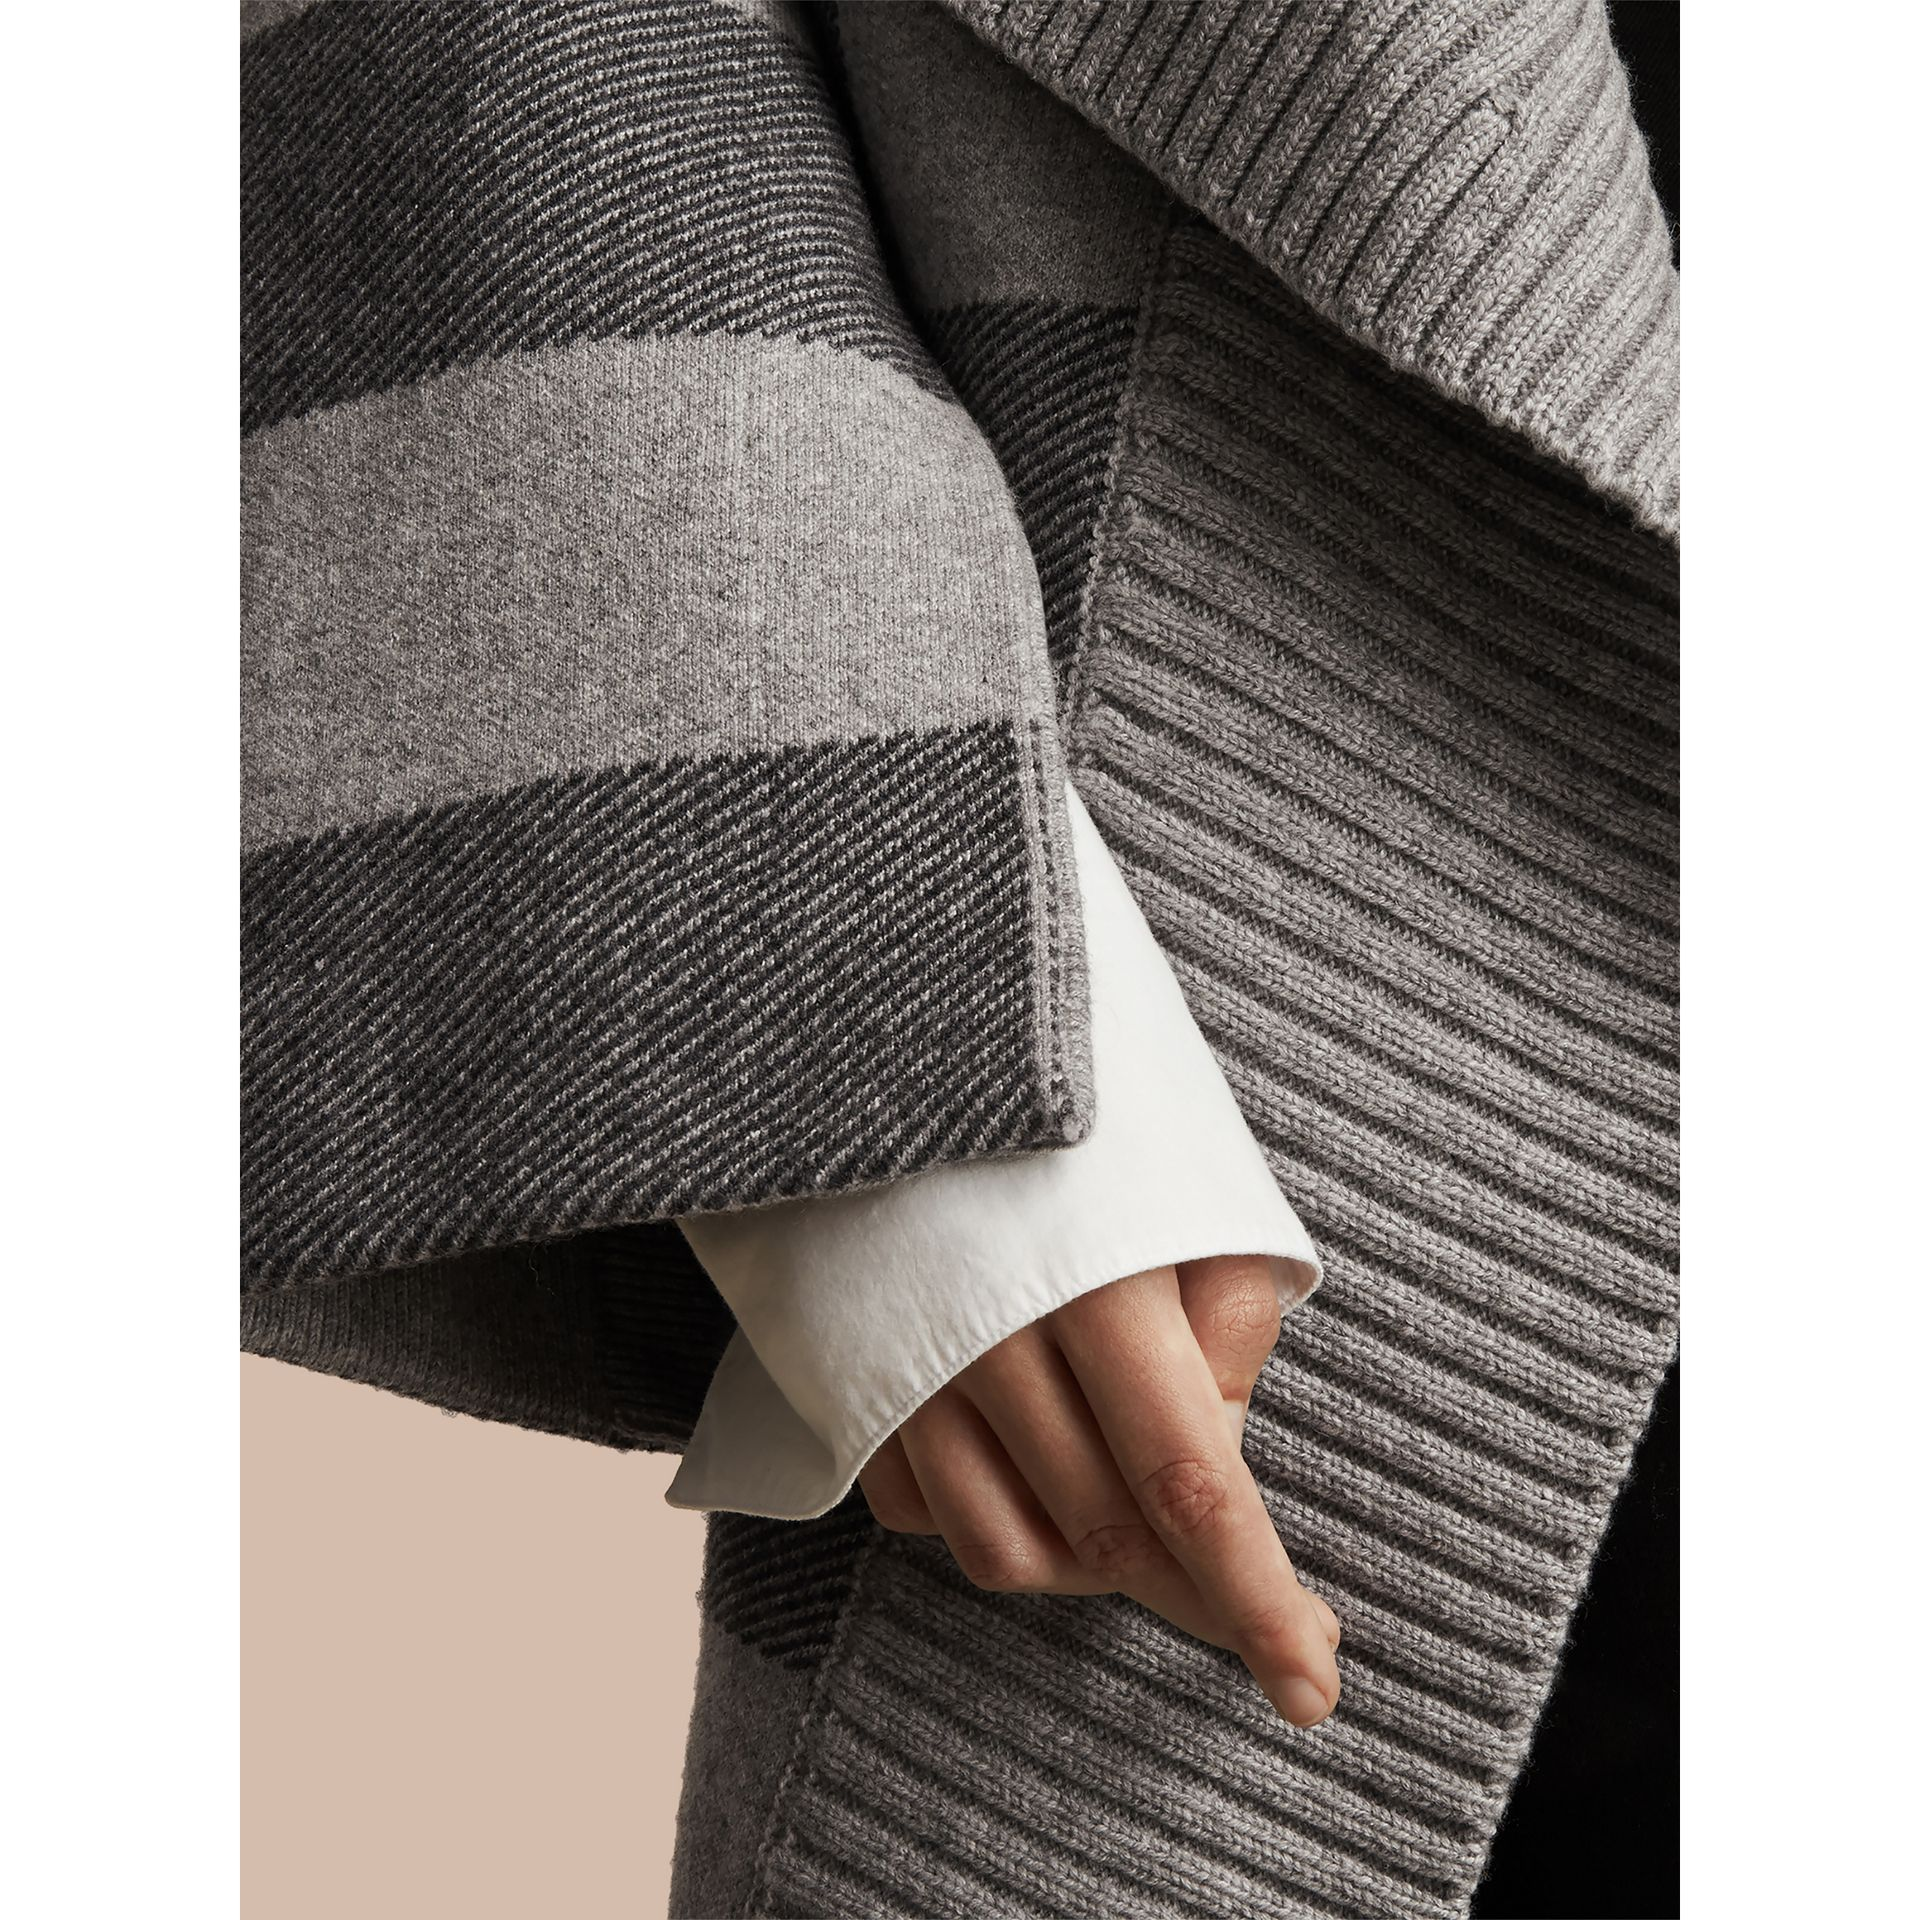 Check Wool Cashmere Blend Cardigan Coat in Pale Grey Melange - Women | Burberry Hong Kong - gallery image 2